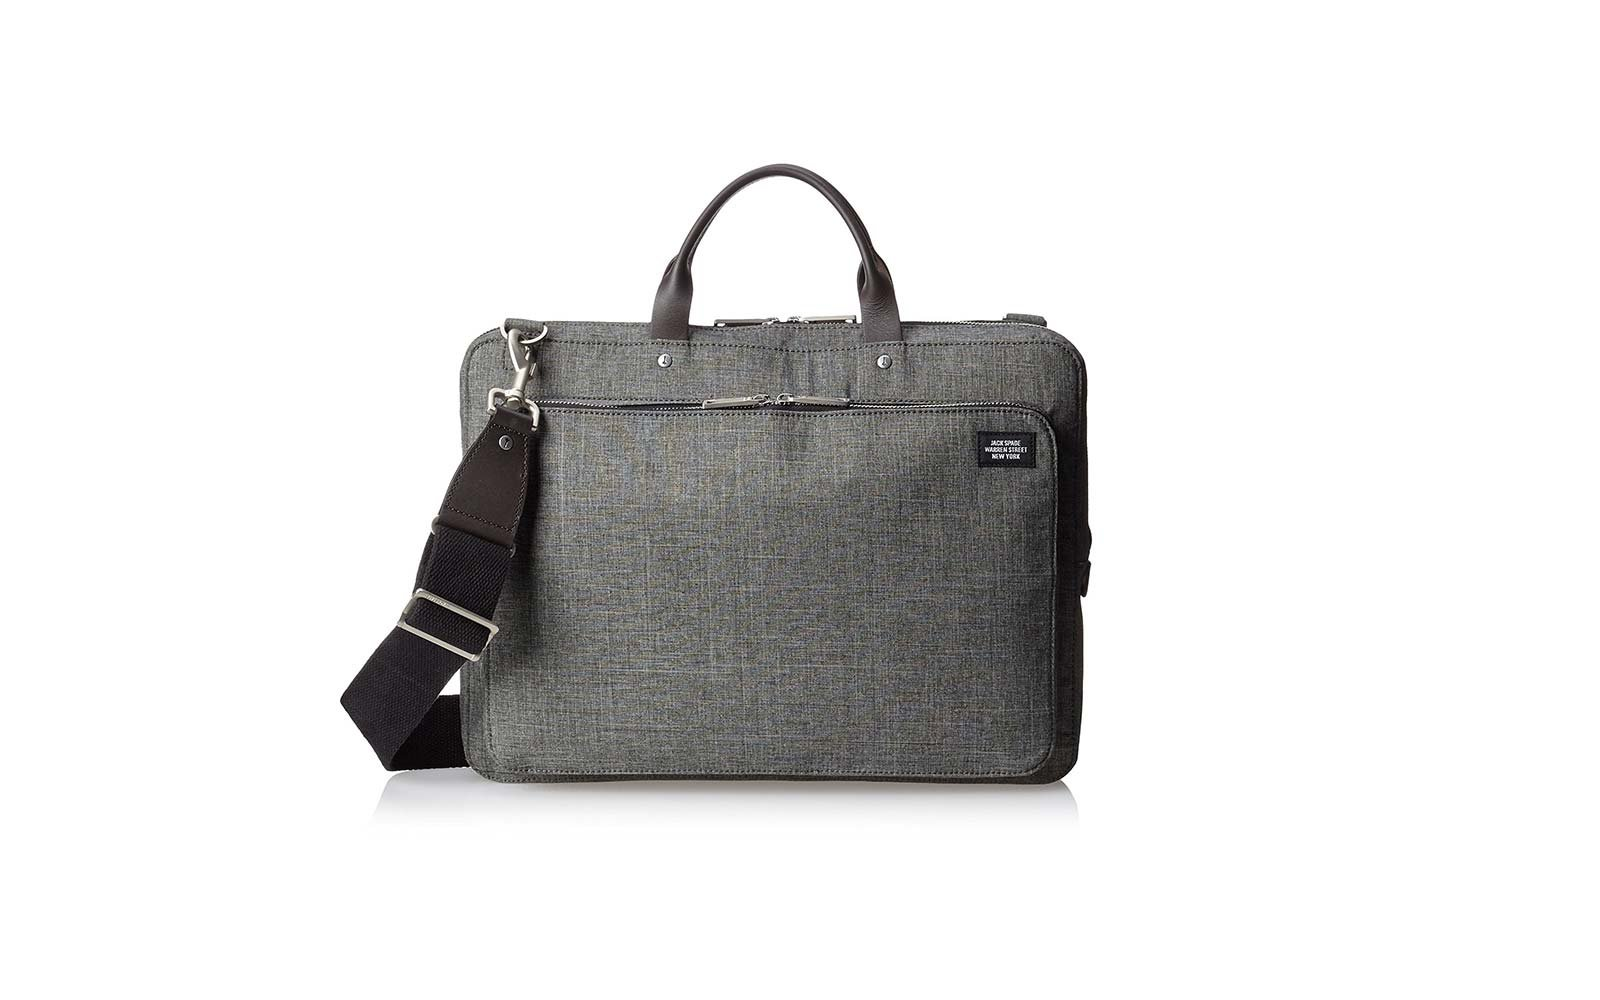 21 Stylish Laptop Bags for Business Travel | Travel   Leisure